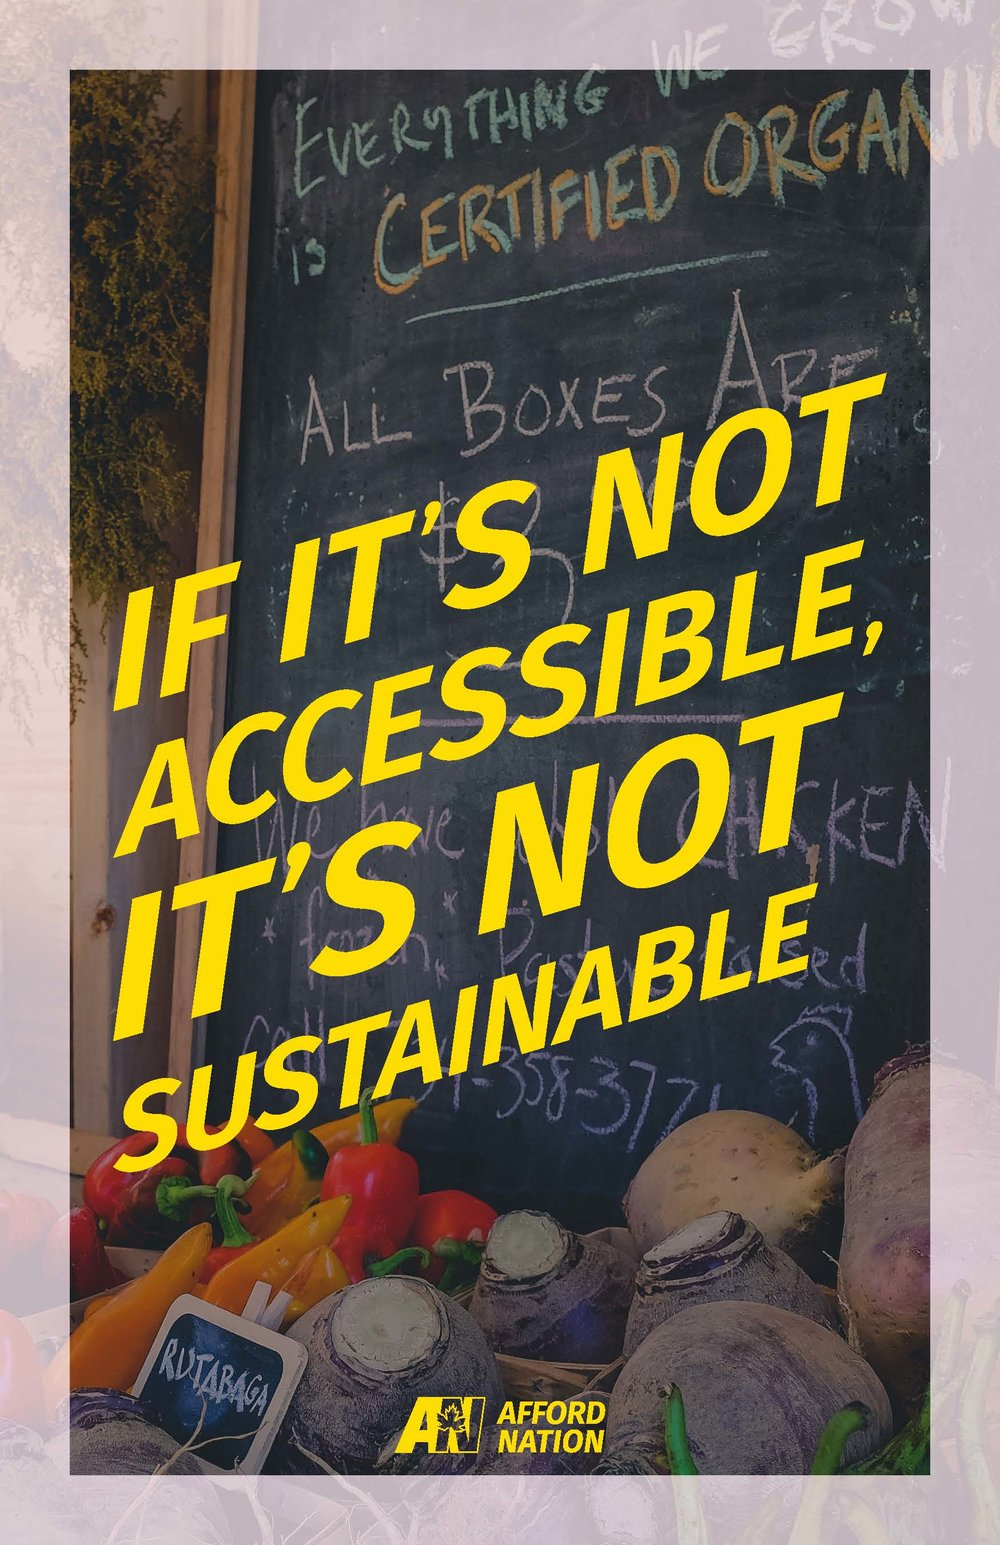 If it's not accessible, it's not sustainable